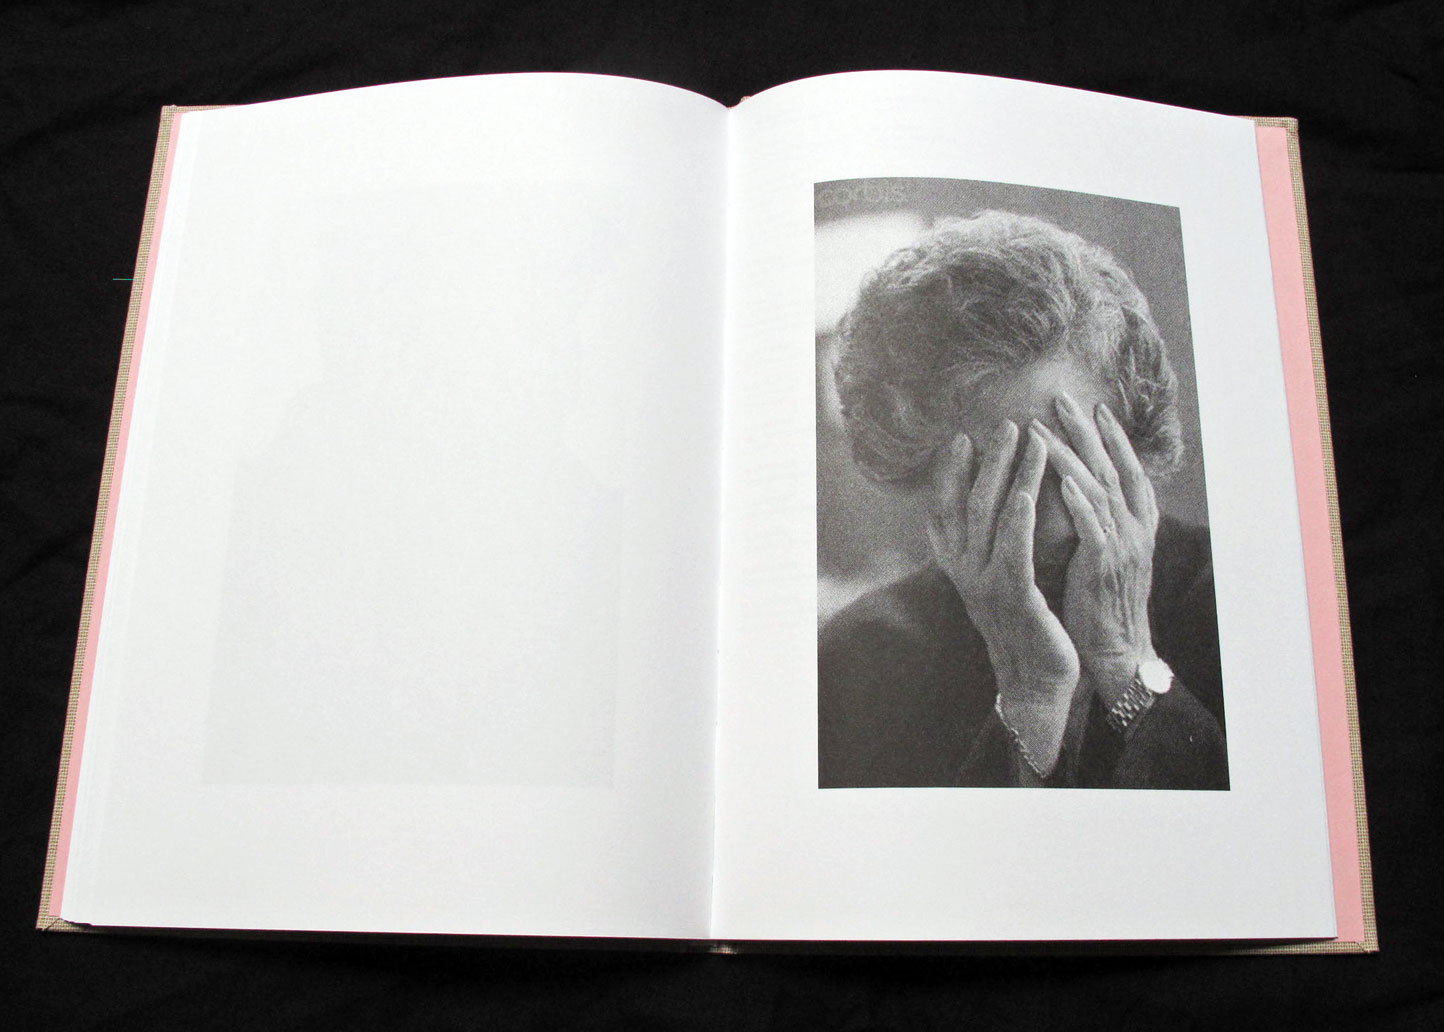 David Horvitz,  Sad, Depressed, People , 2012, New Documents.